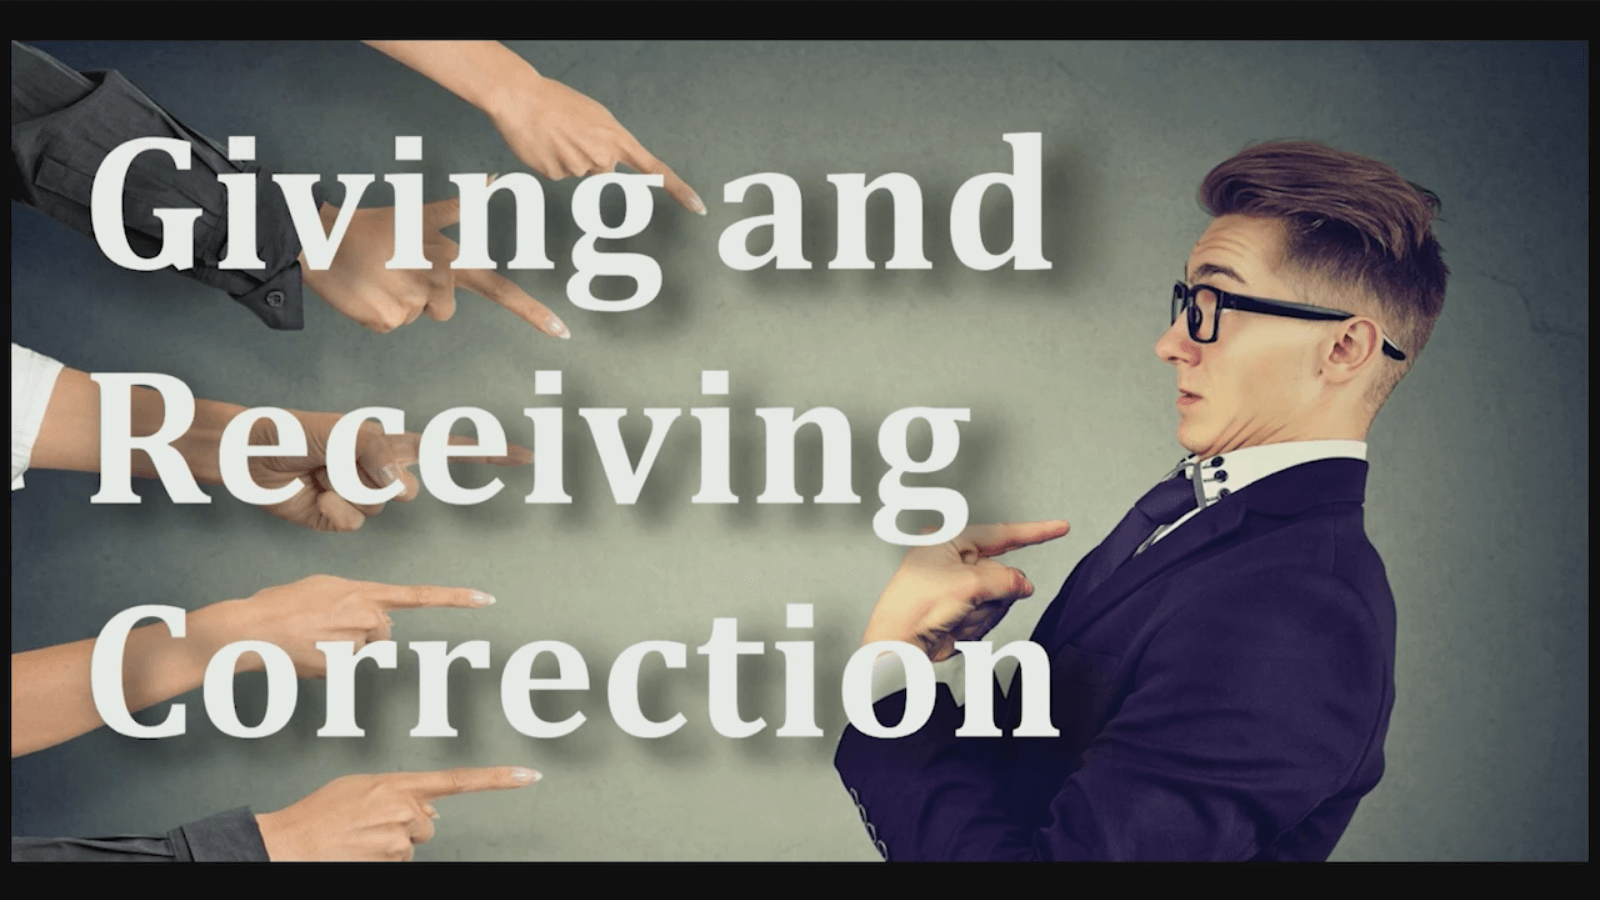 Giving and Receiving Correction